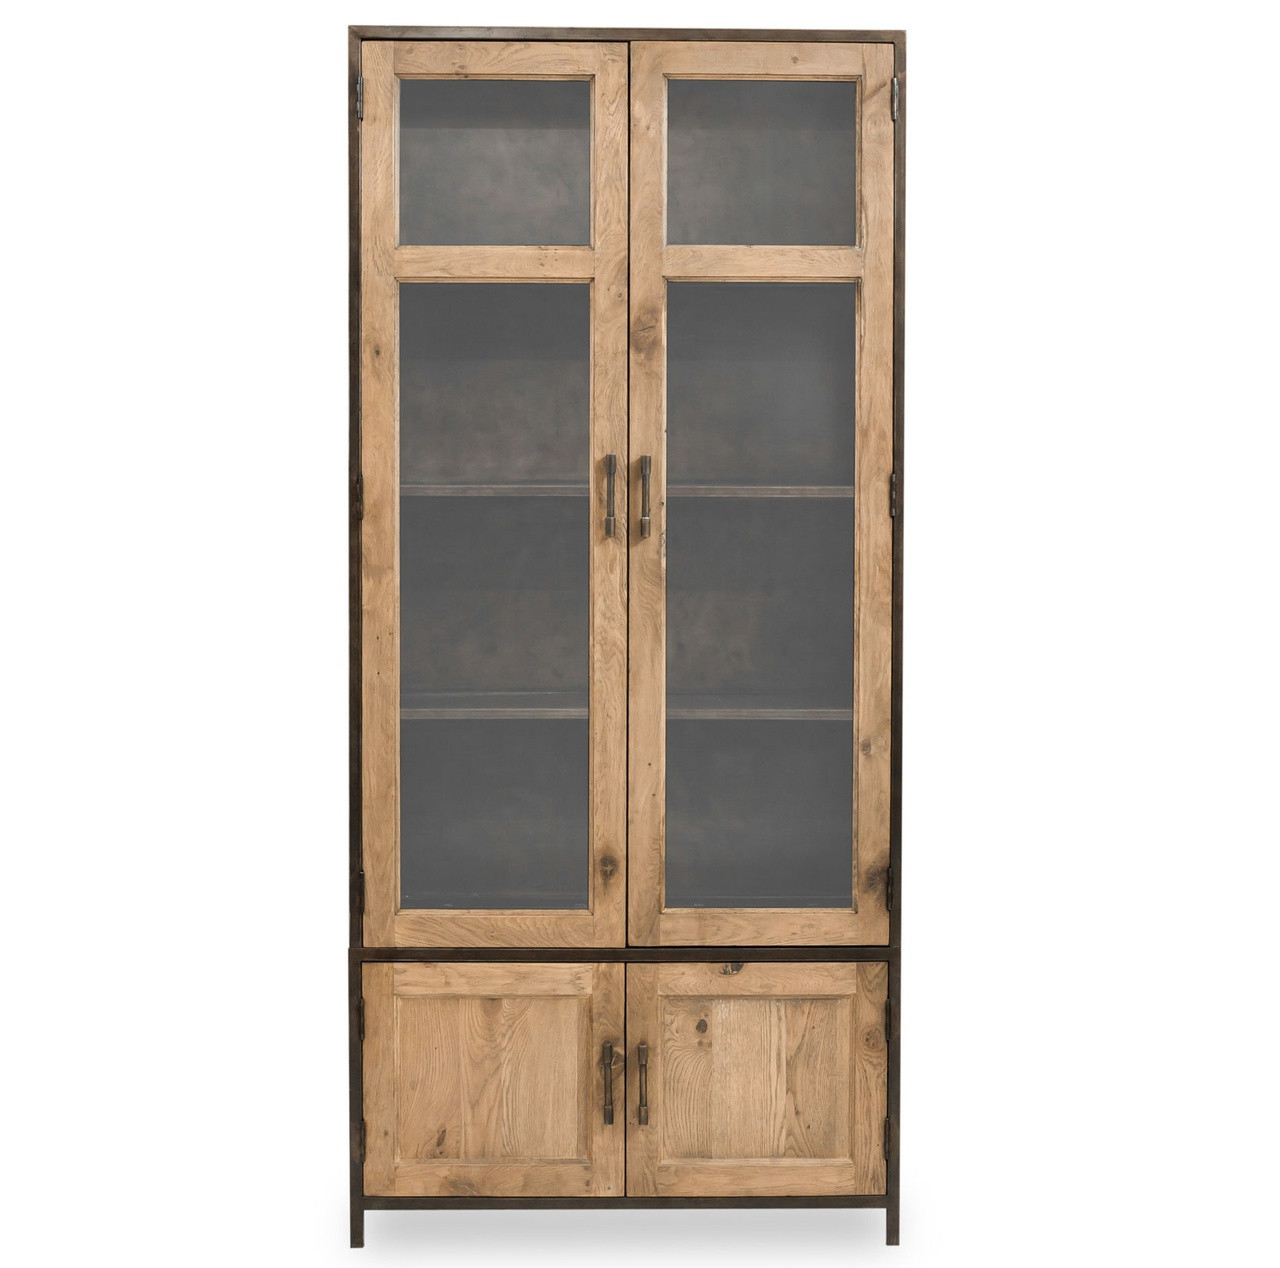 Dominic Industrial Metal + Oak Tall Cabinet With Glass Doors